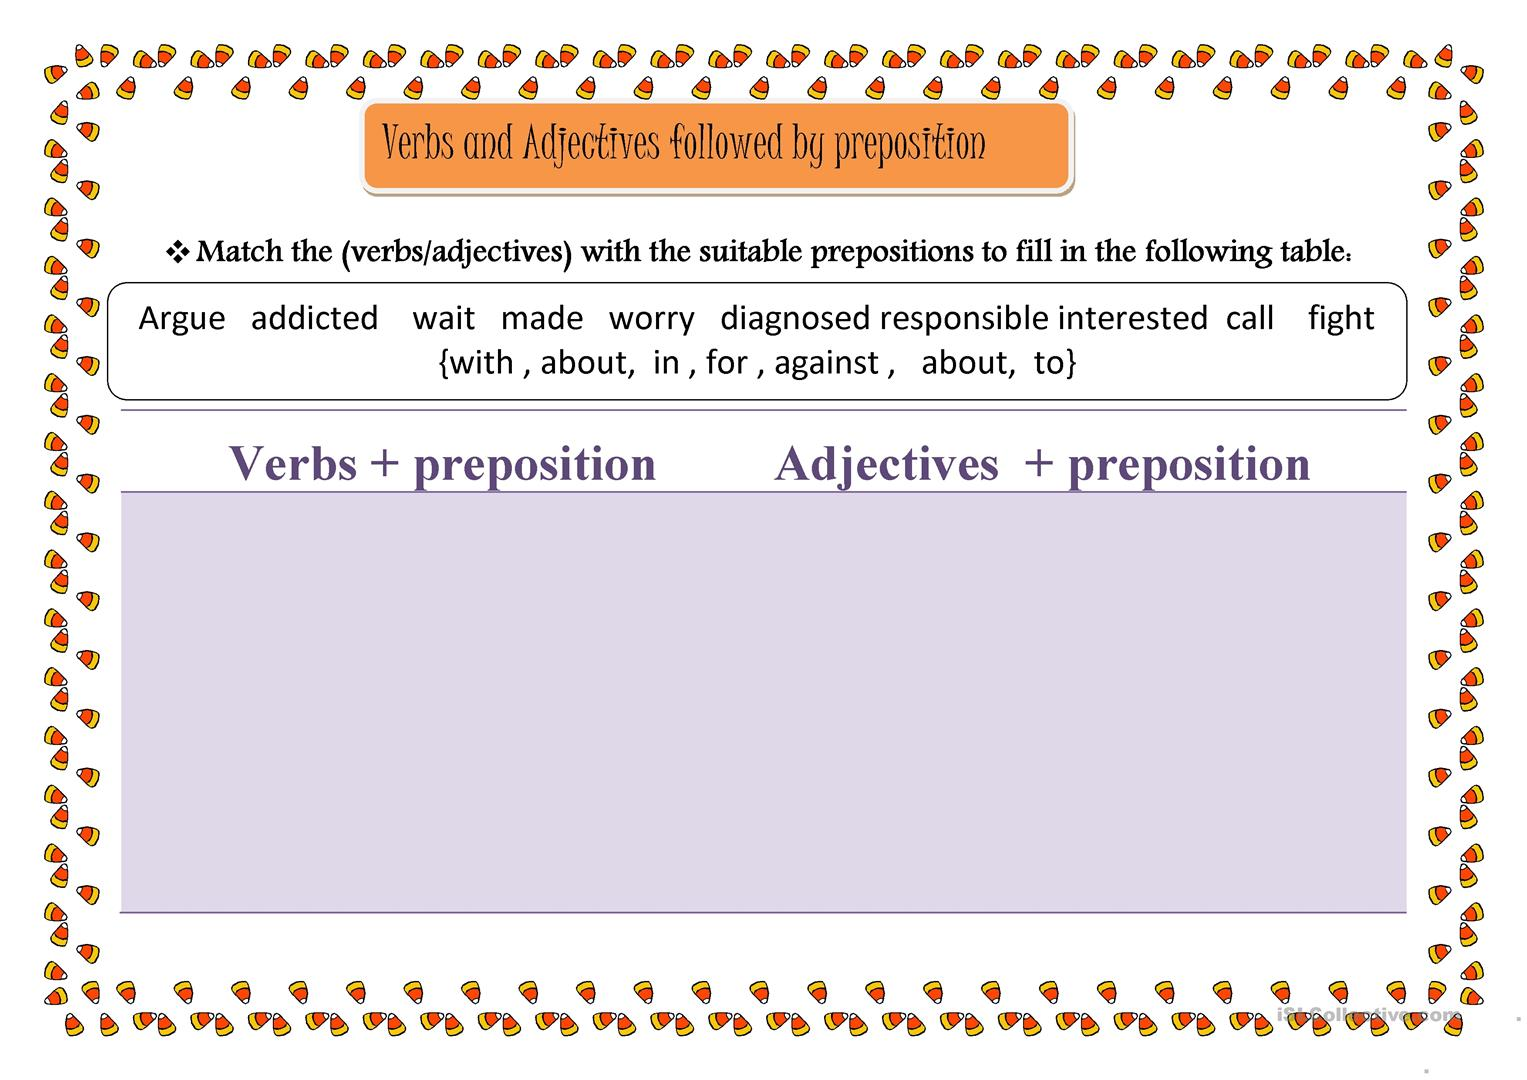 Verbs And Adjectives Followed By Preposition Worksheet